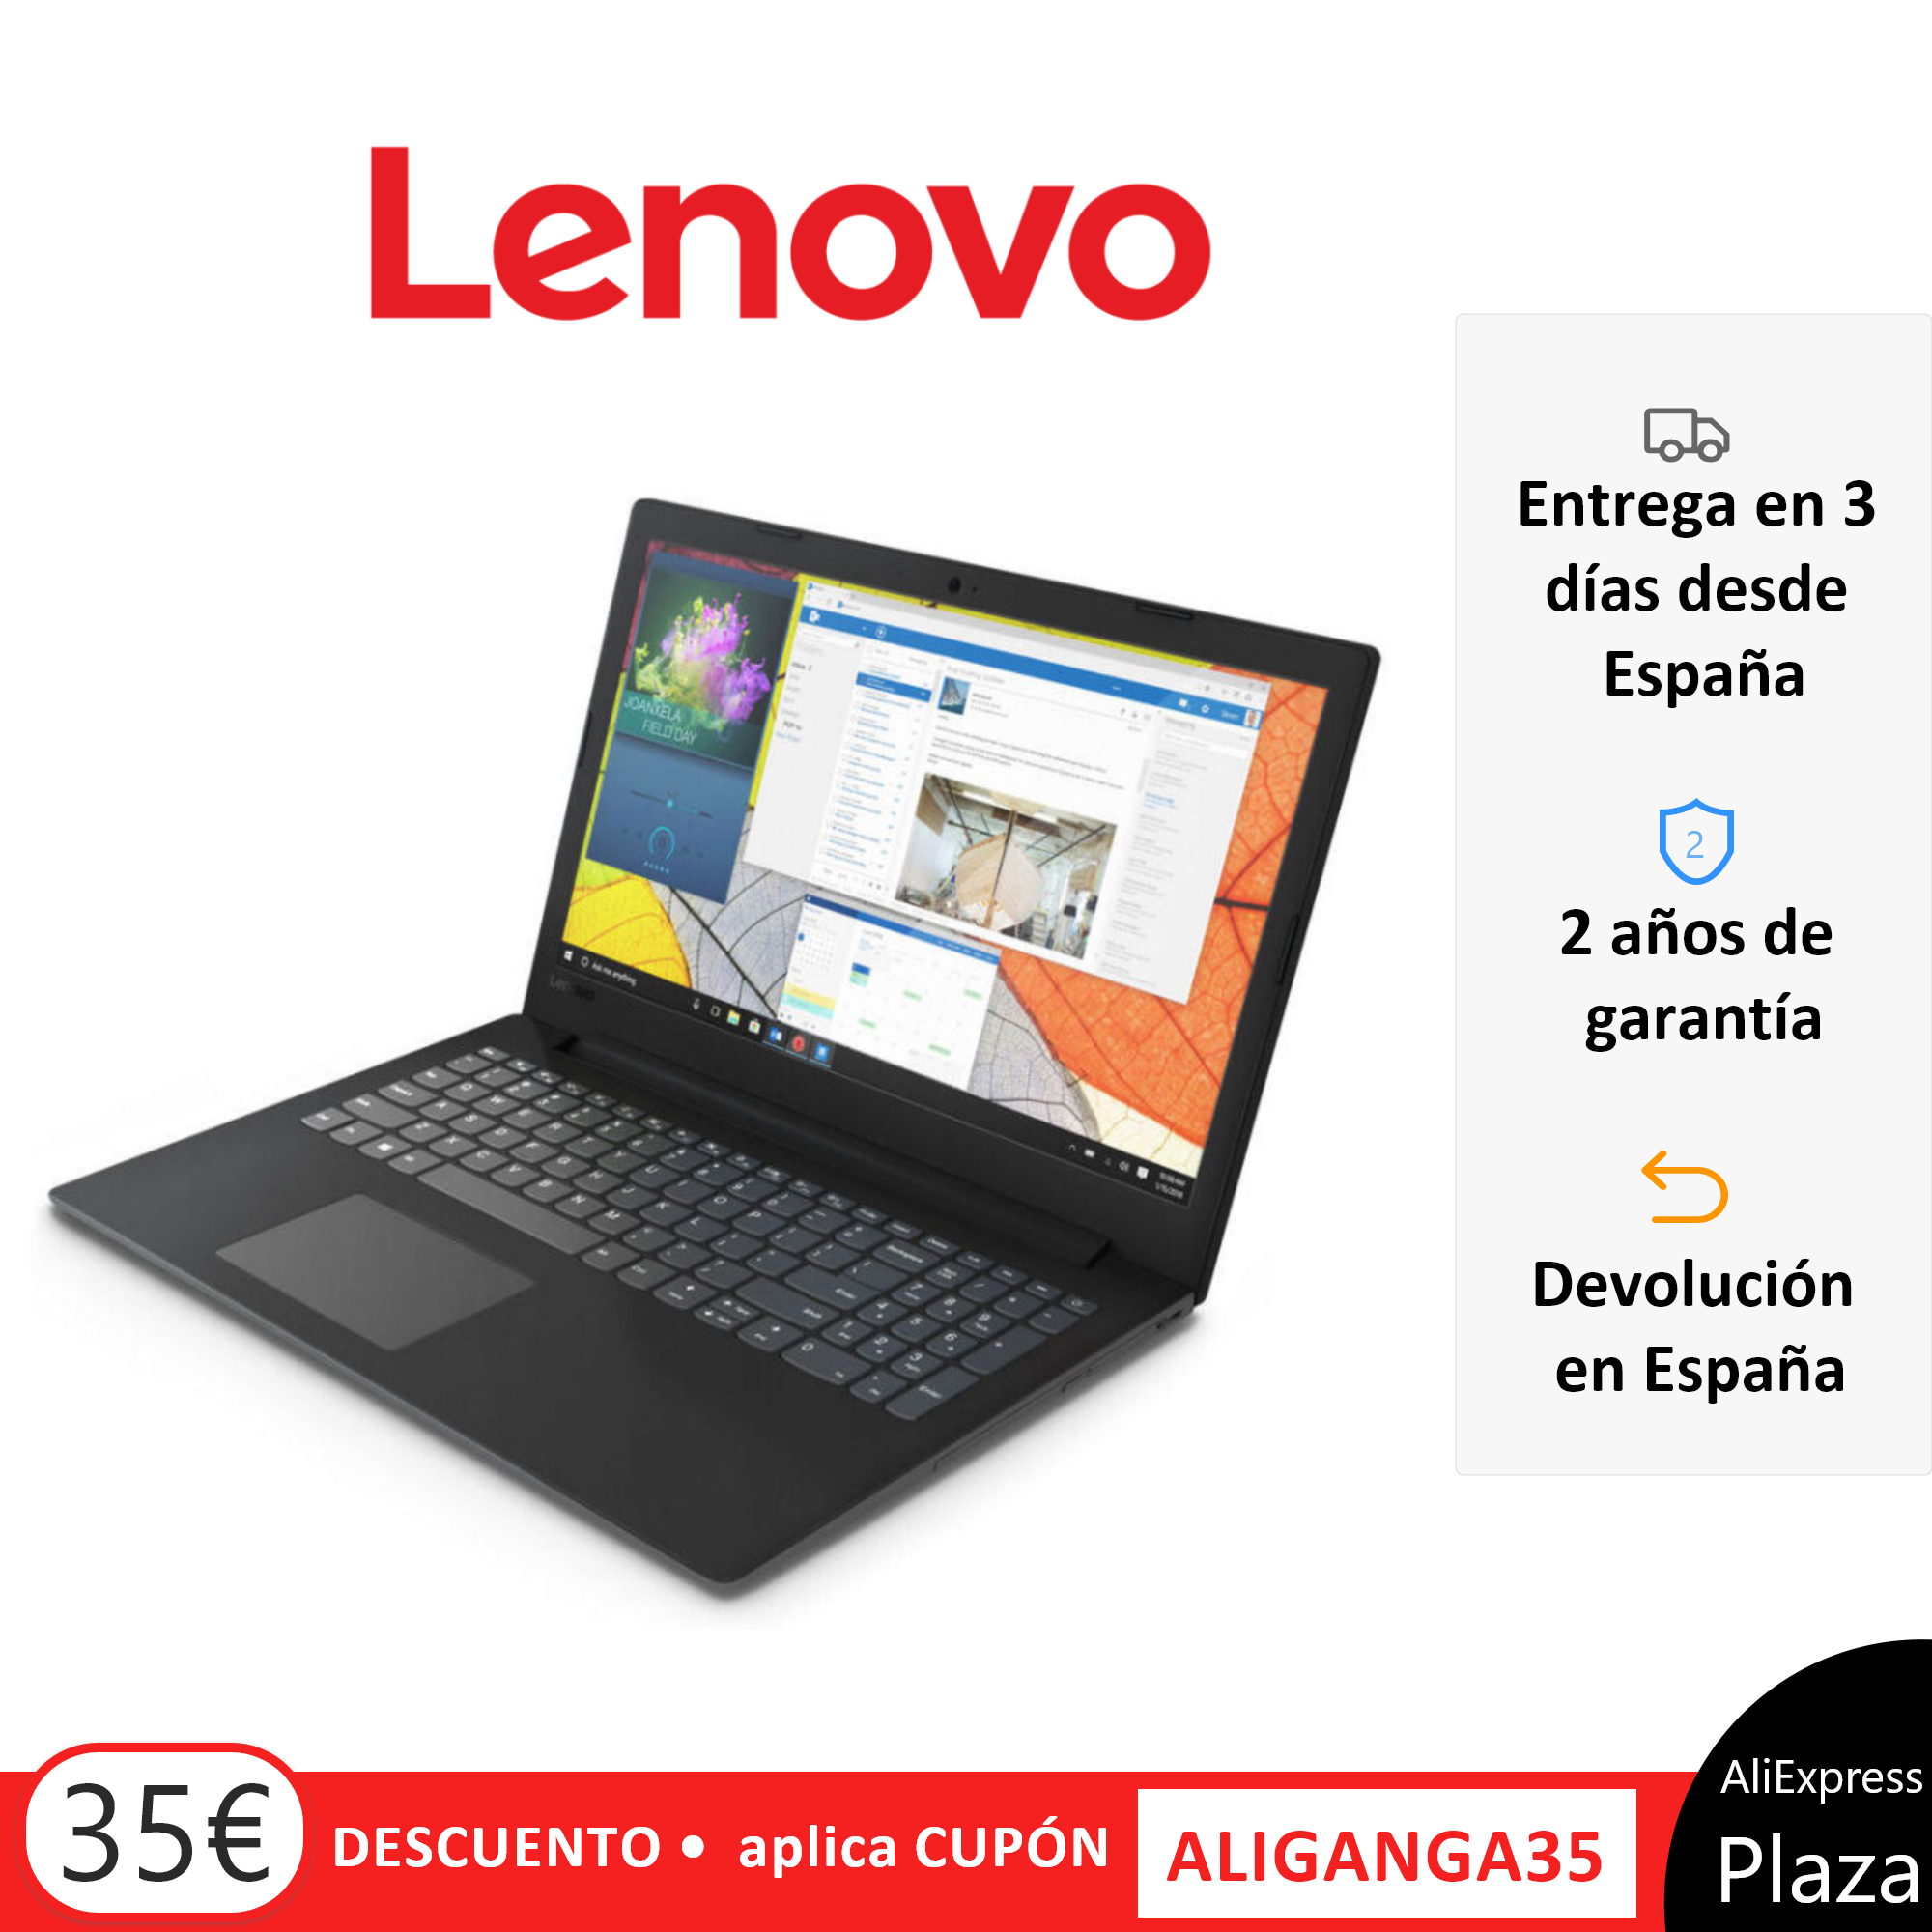 LAPTOP 15 ''-LENOVO V145-15AST-AMD A9-9425/8 GBGB/256 SSD/RADEON R5- Windows 10 Home FHD Keyboard Spanish Dictionary